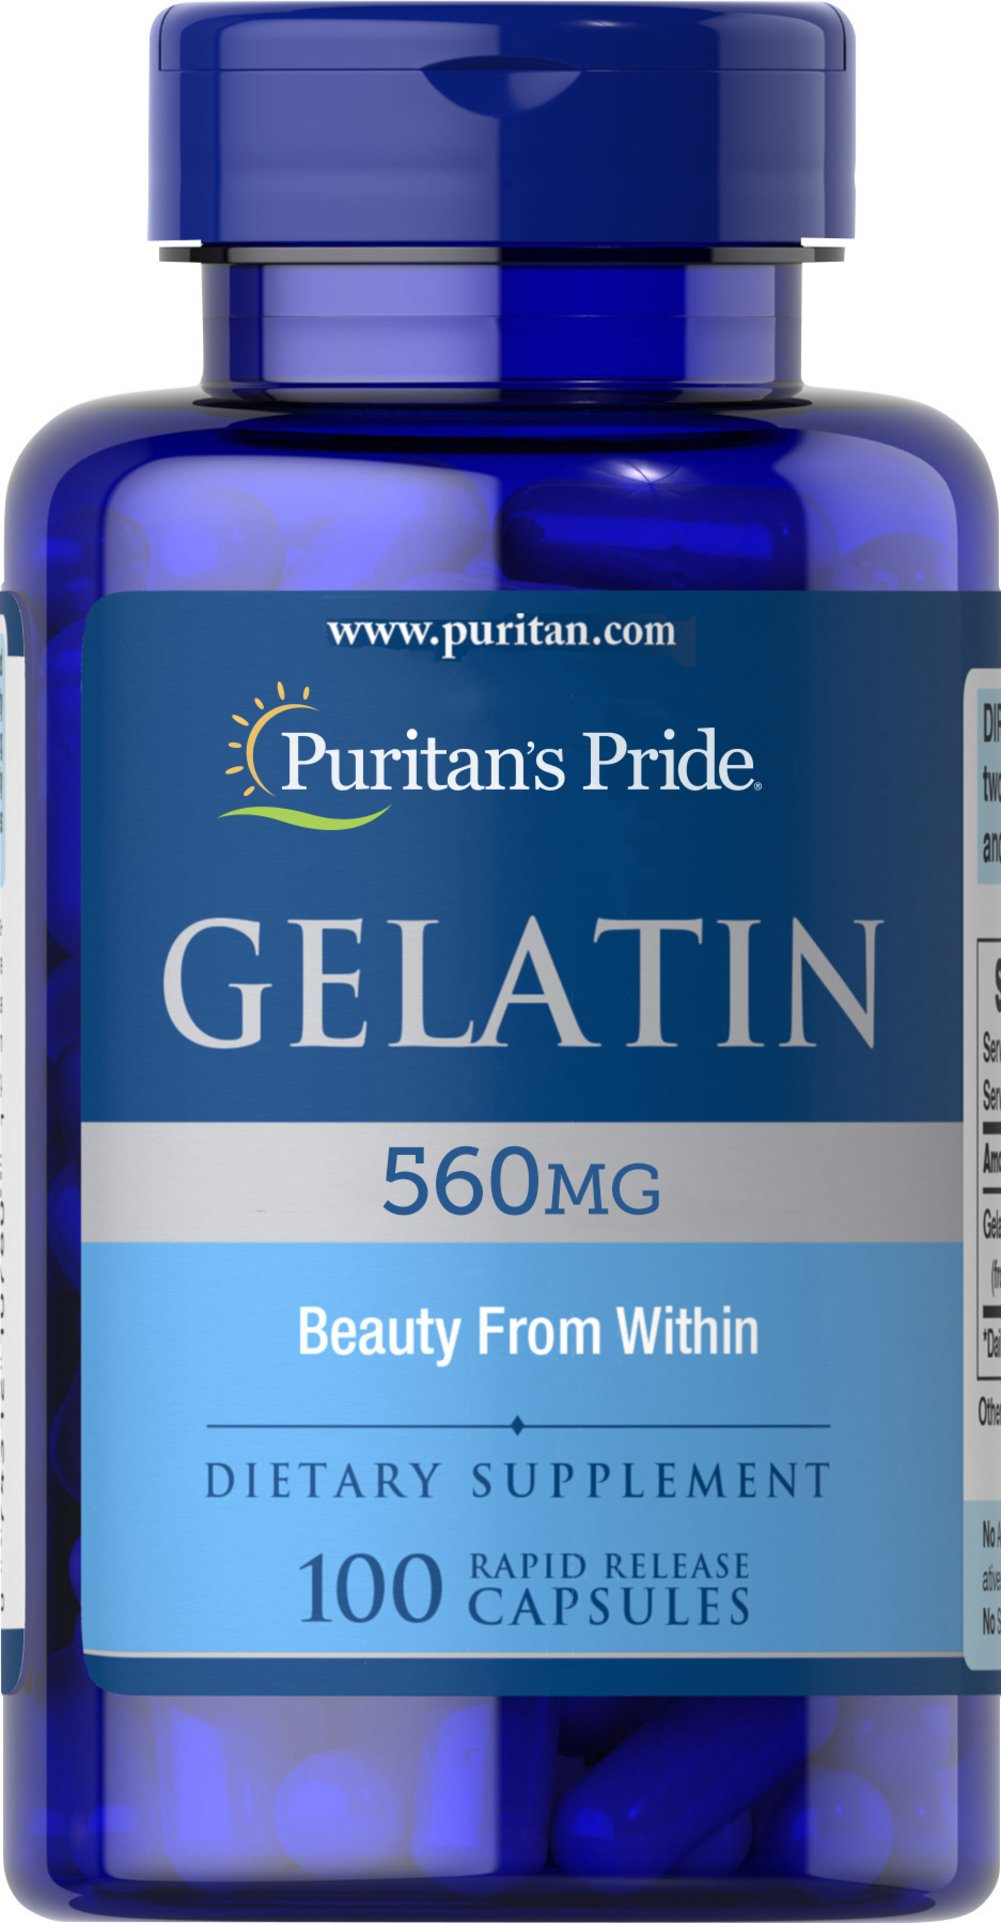 Gelatin 650 mg <p>Supports the Beauty of Nails**</p><p>An active lifestyle, harsh detergents, on-the-run nutrition - all can have an effect on the health of your nails.   Gelatin is one of the raw materials for collagen, the building block for strong, healthy nails.** As a supplement, Gelatin supports the beauty of your nails.**</p> 100 Capsules 650 mg $10.29